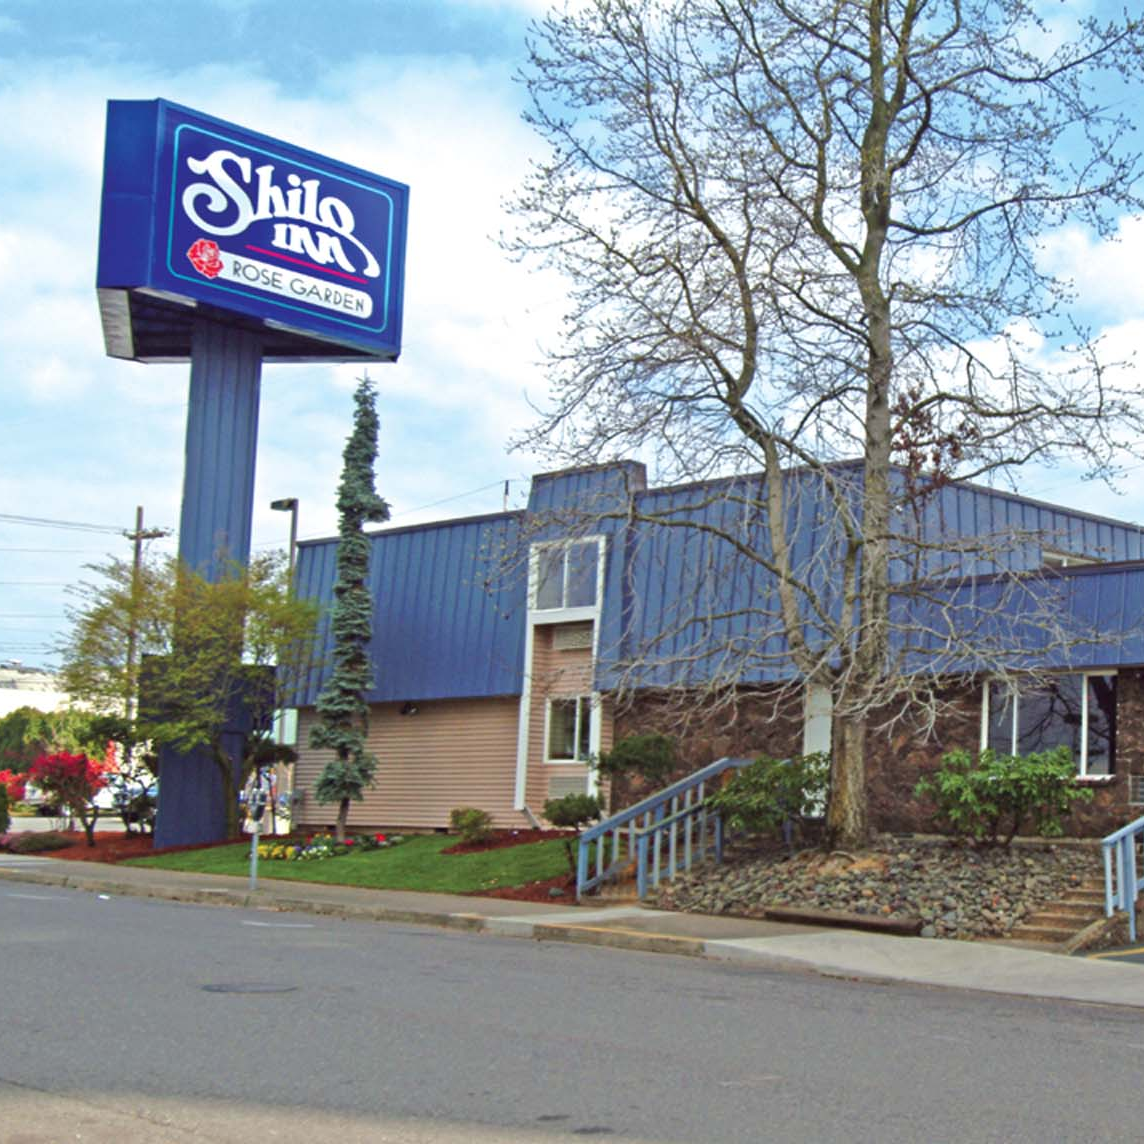 Shilo Inns Rose Garden